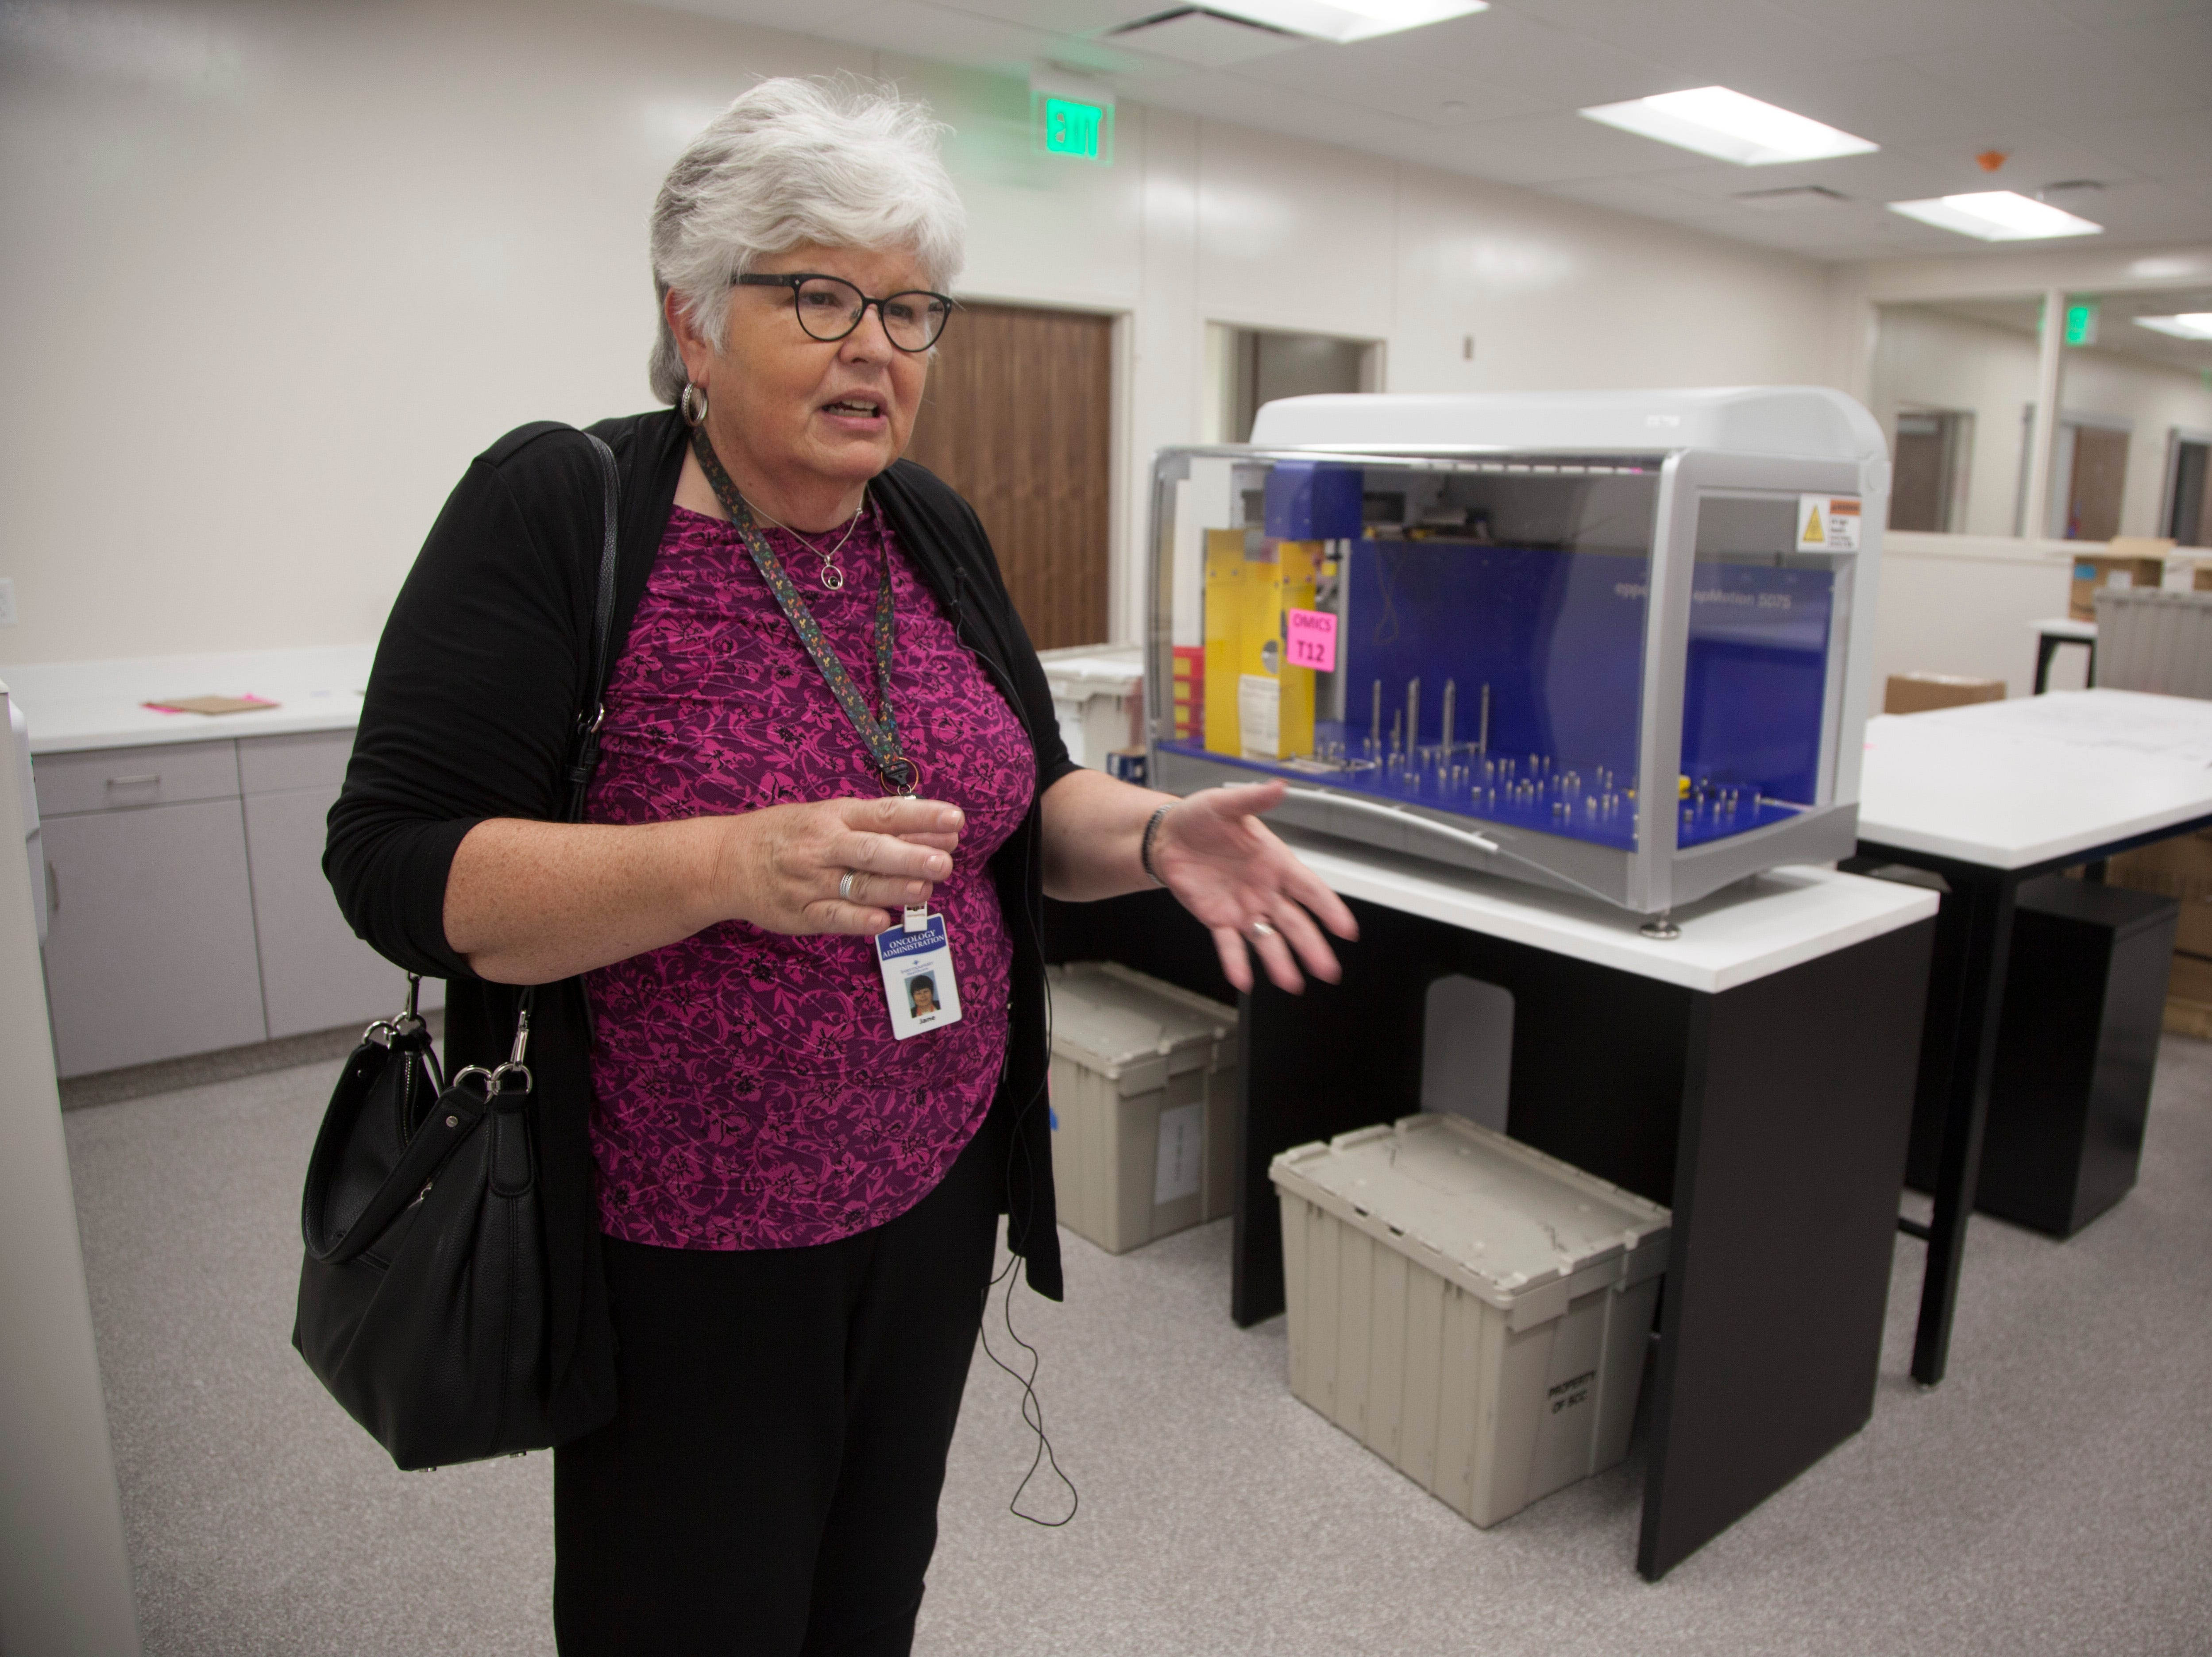 Jane Jensen, Program Director at the IHC Cancer Center, explains the technology and design implemented in the new center and their focus on patient connection and care Wednesday, Sept. 5, 2018.